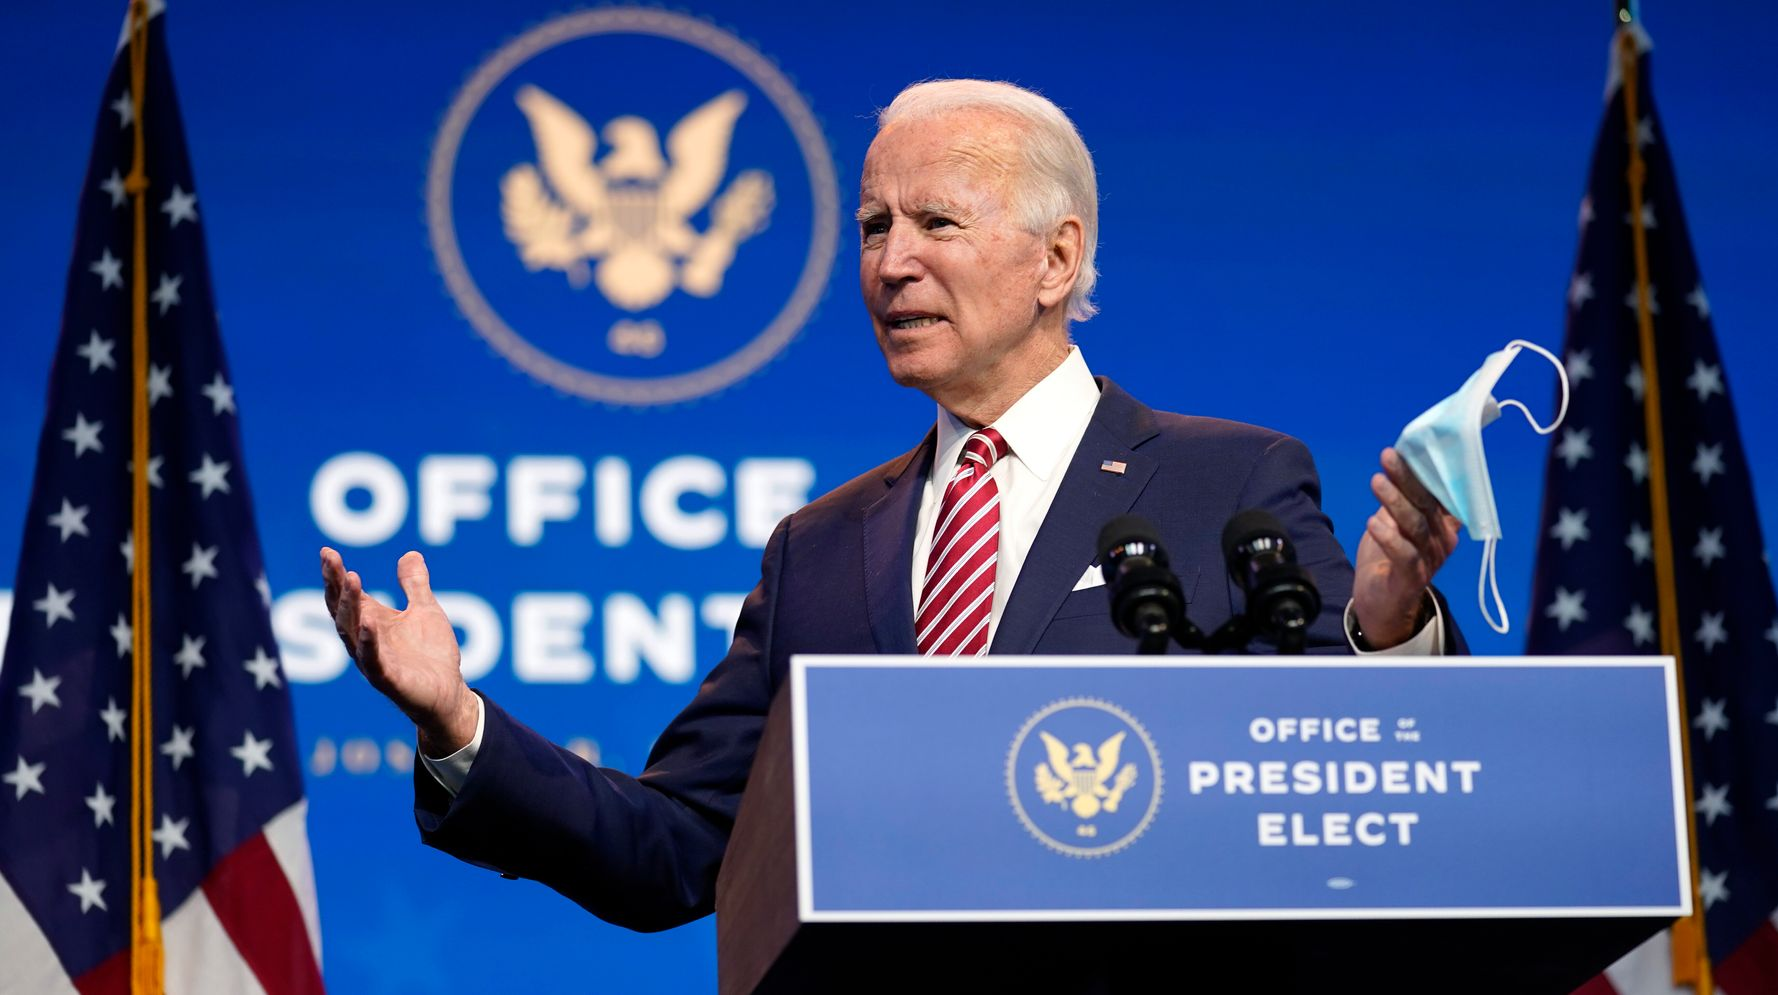 Biden Approaches 80 Million Votes In Historic Victory